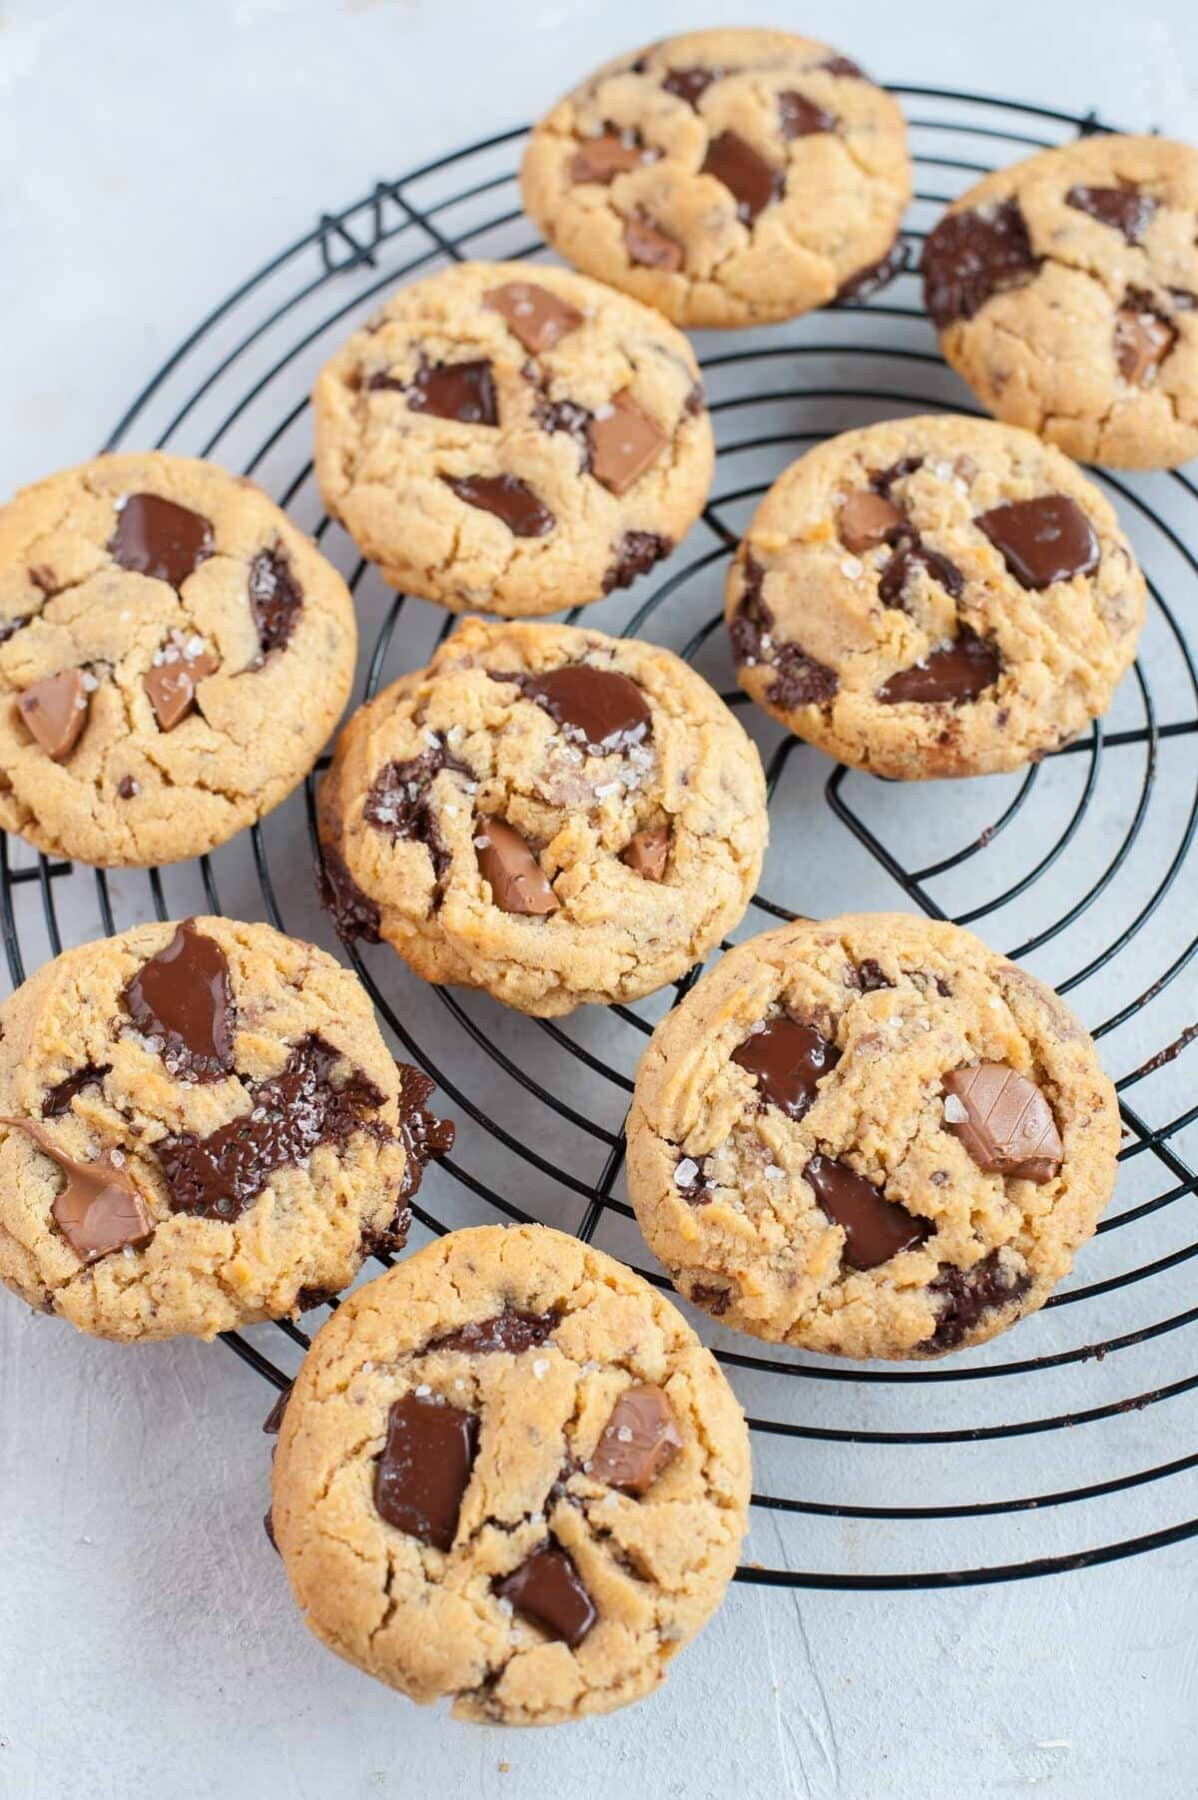 Chocolate chunk peanut butter cookies on a black wire rack.